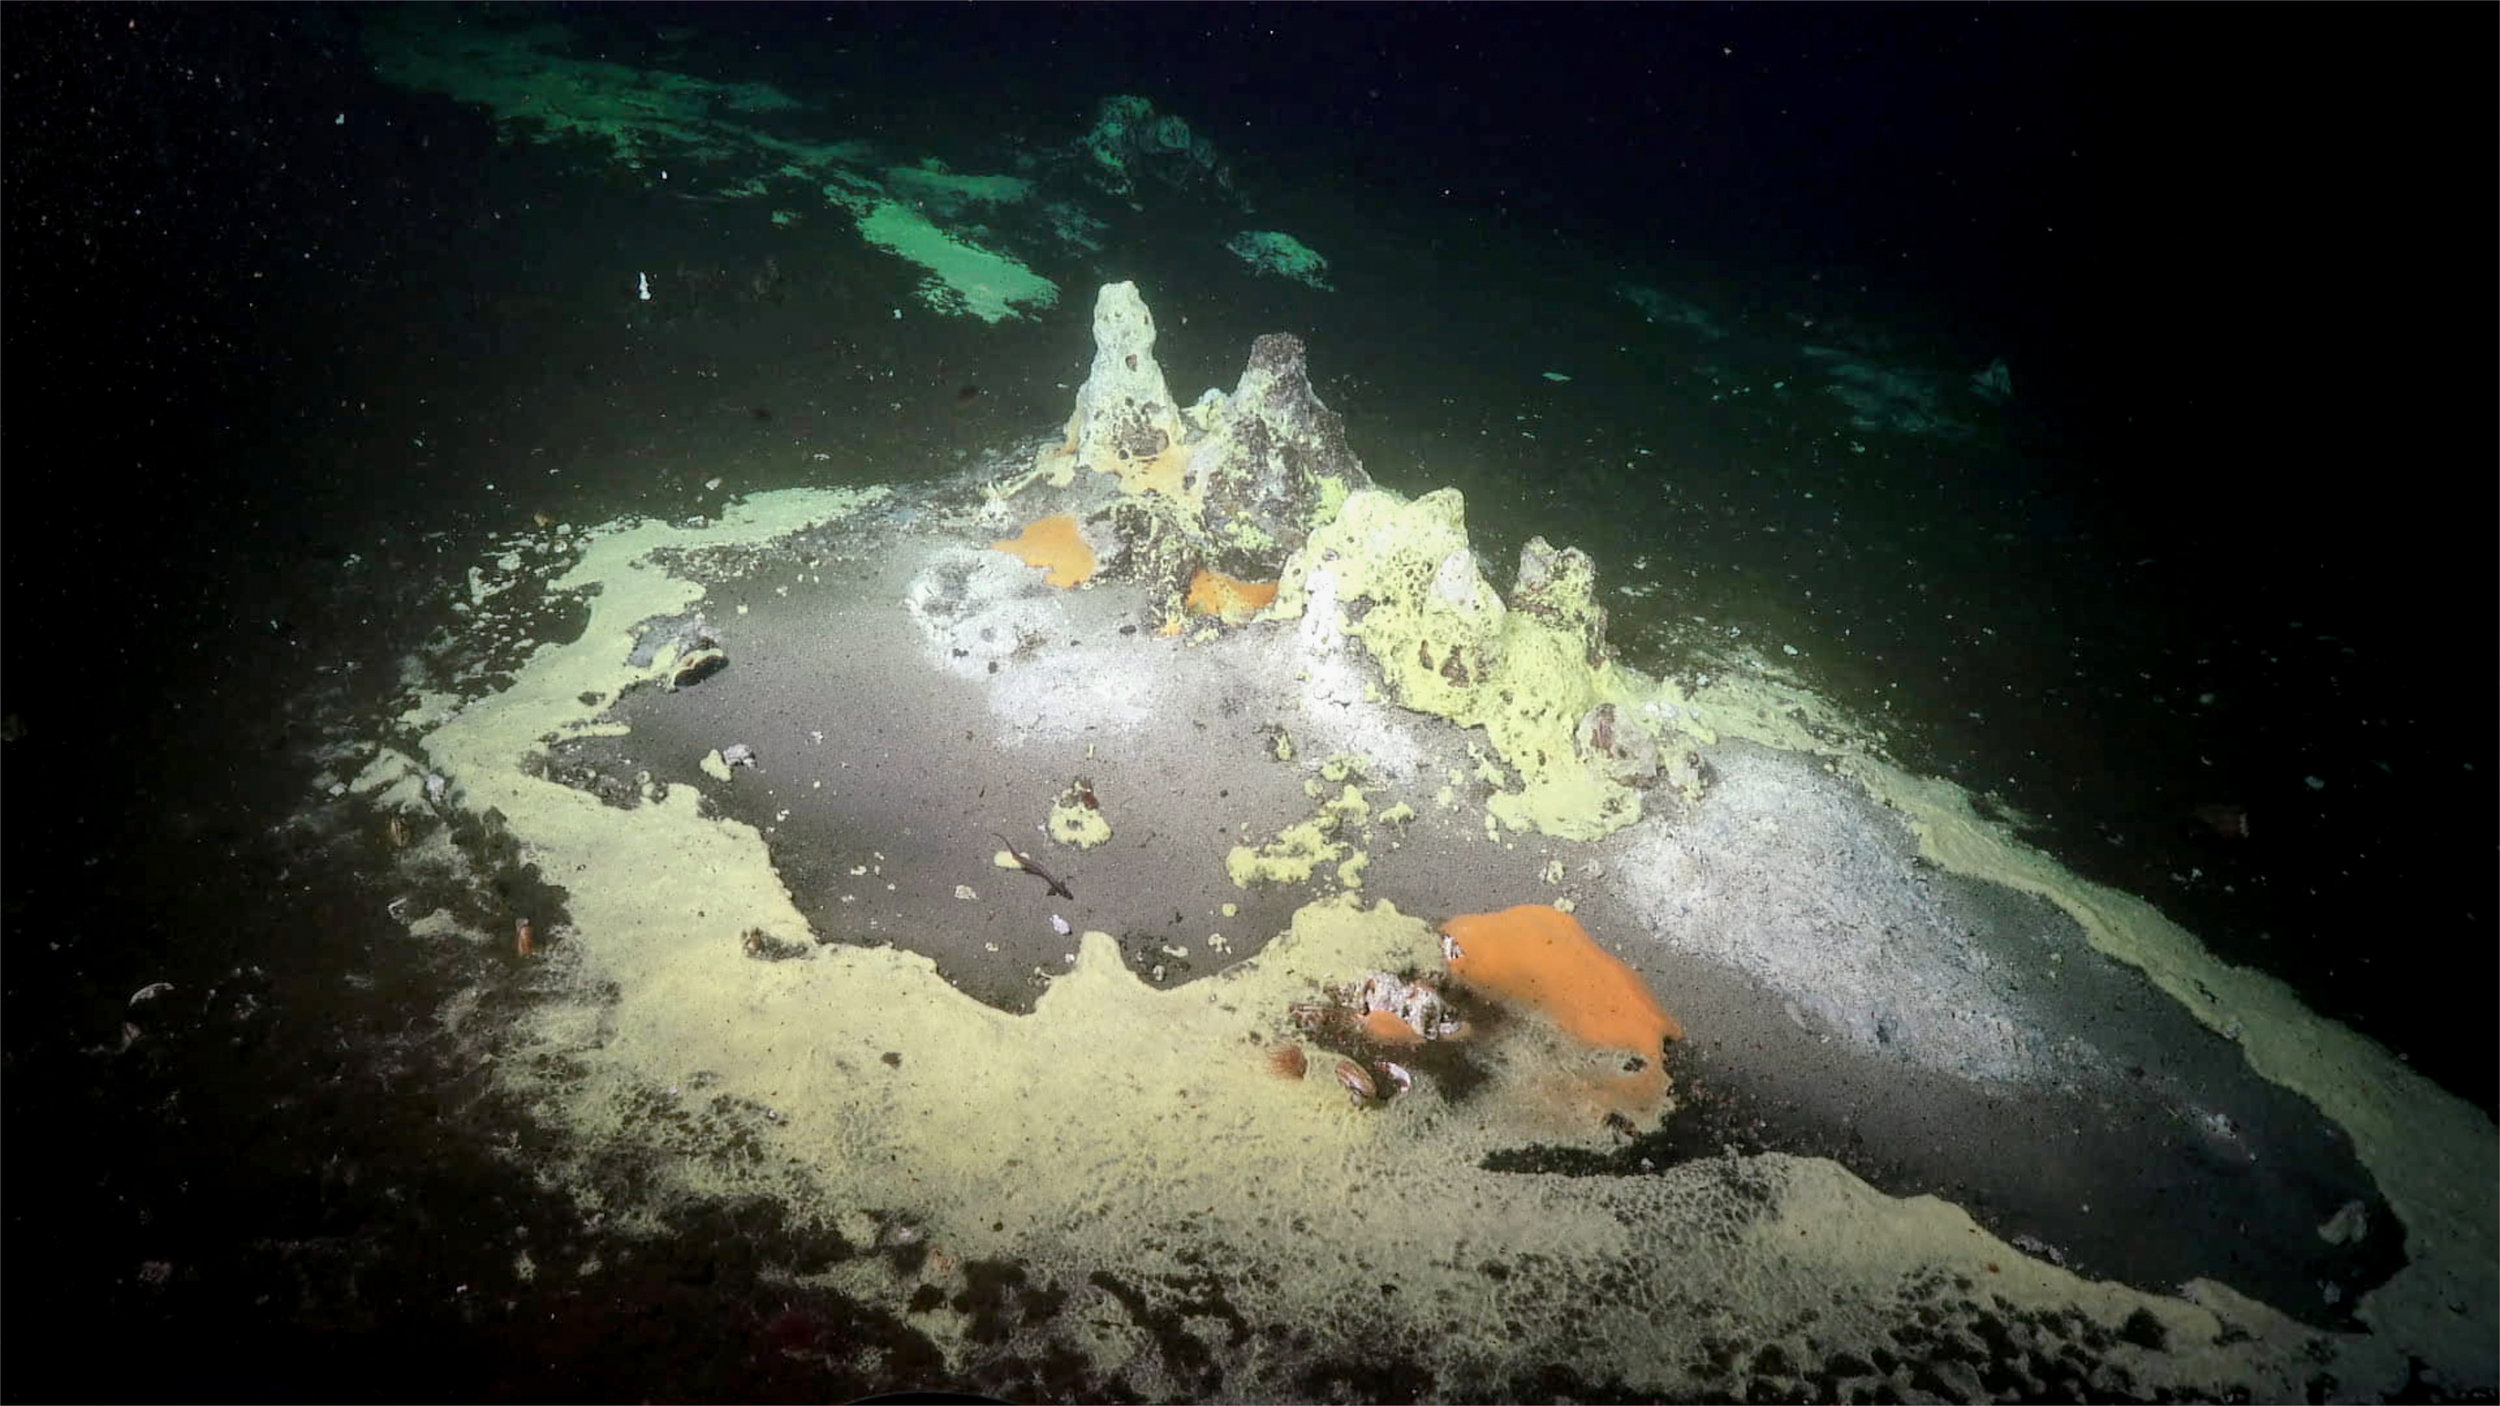 Bacterial mats and hydrothermal chimneys in the Gulf of California.  (Image courtesy of Schmidt Ocean Institute)